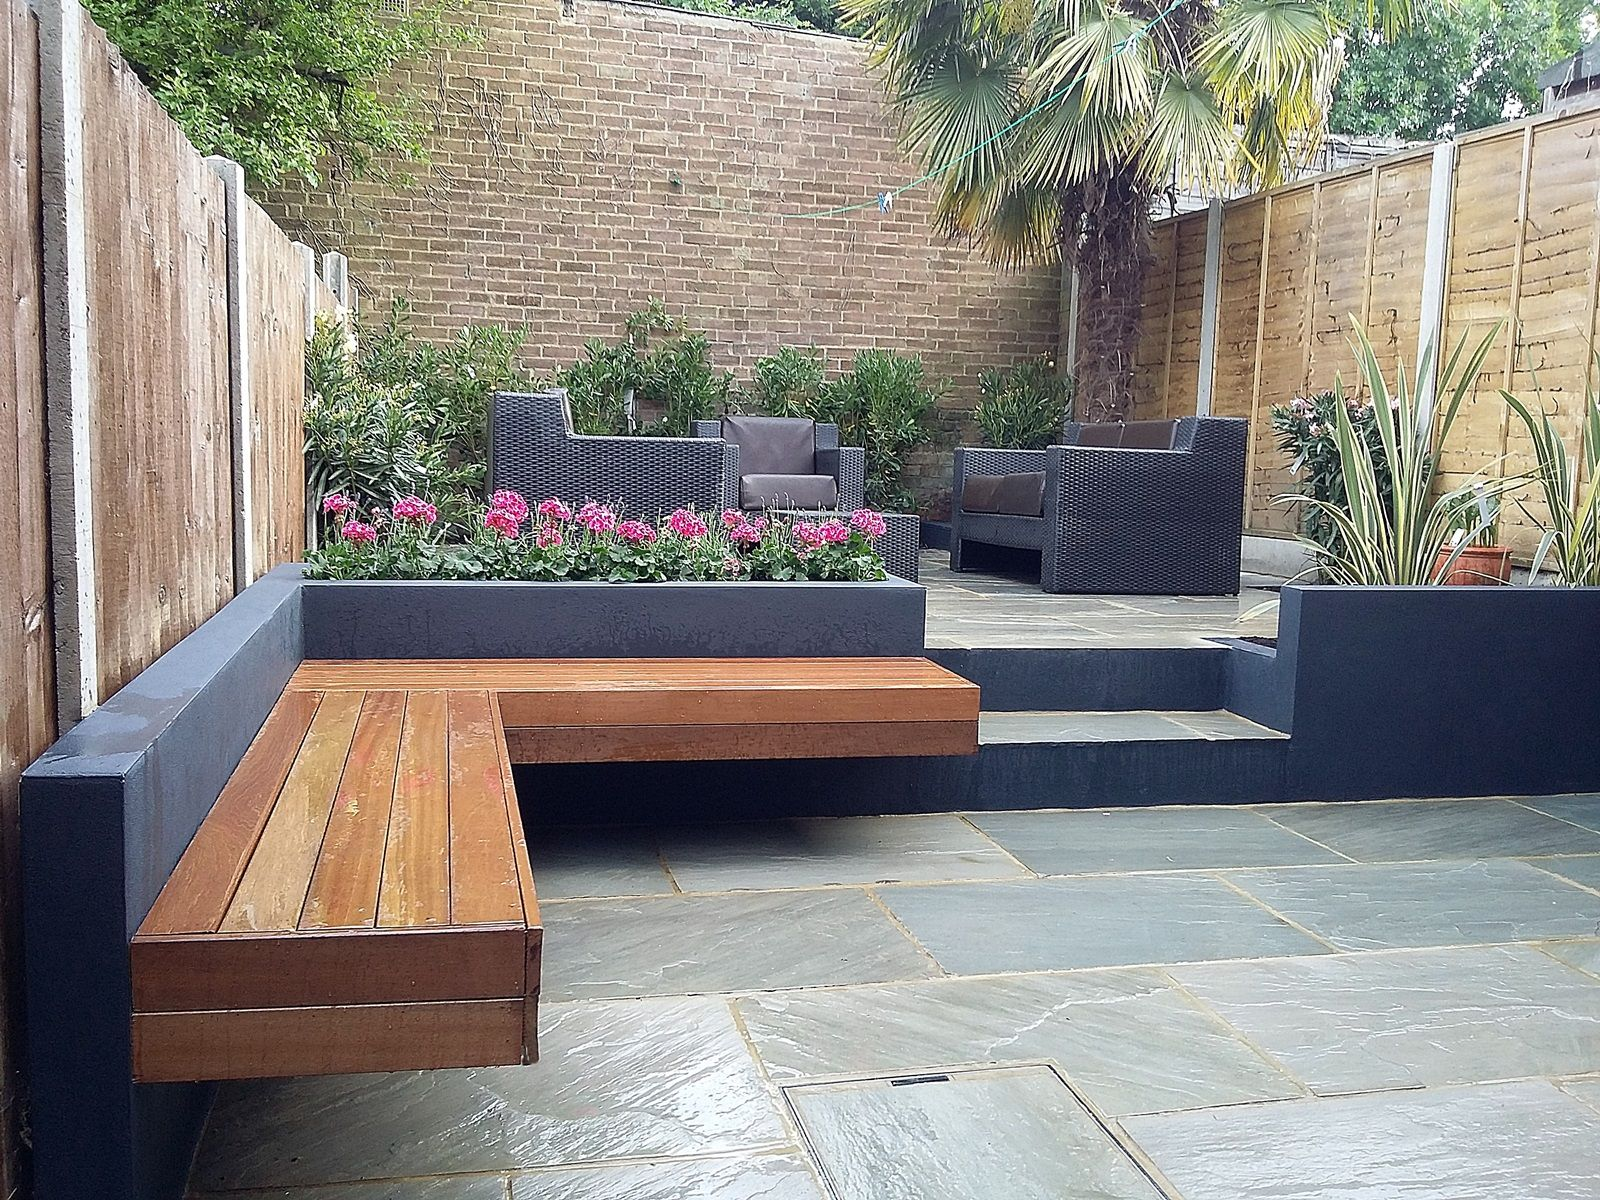 Modern garden design modern garden design london natural for Contemporary garden design ideas